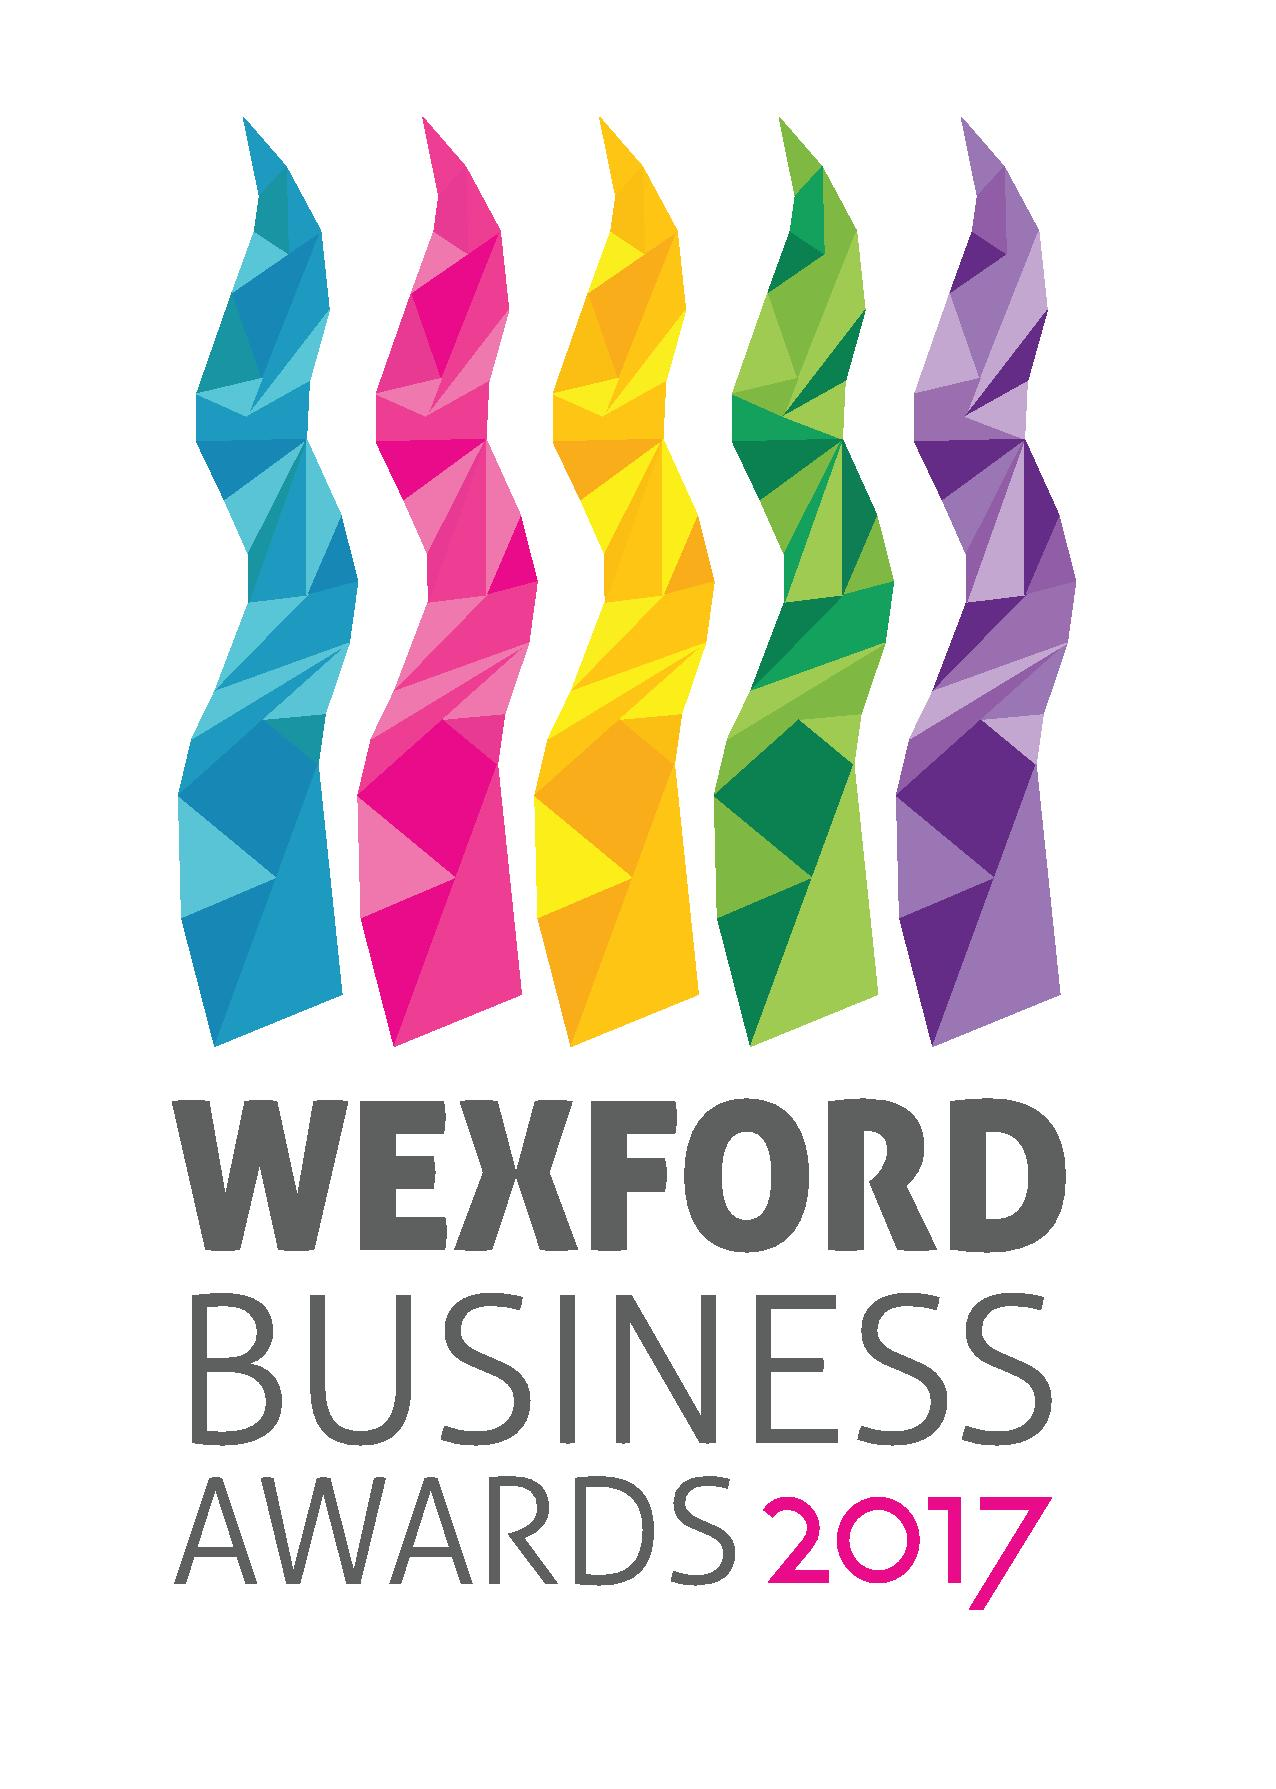 Biz Awards 2017 - Wexford Business Awards 2017